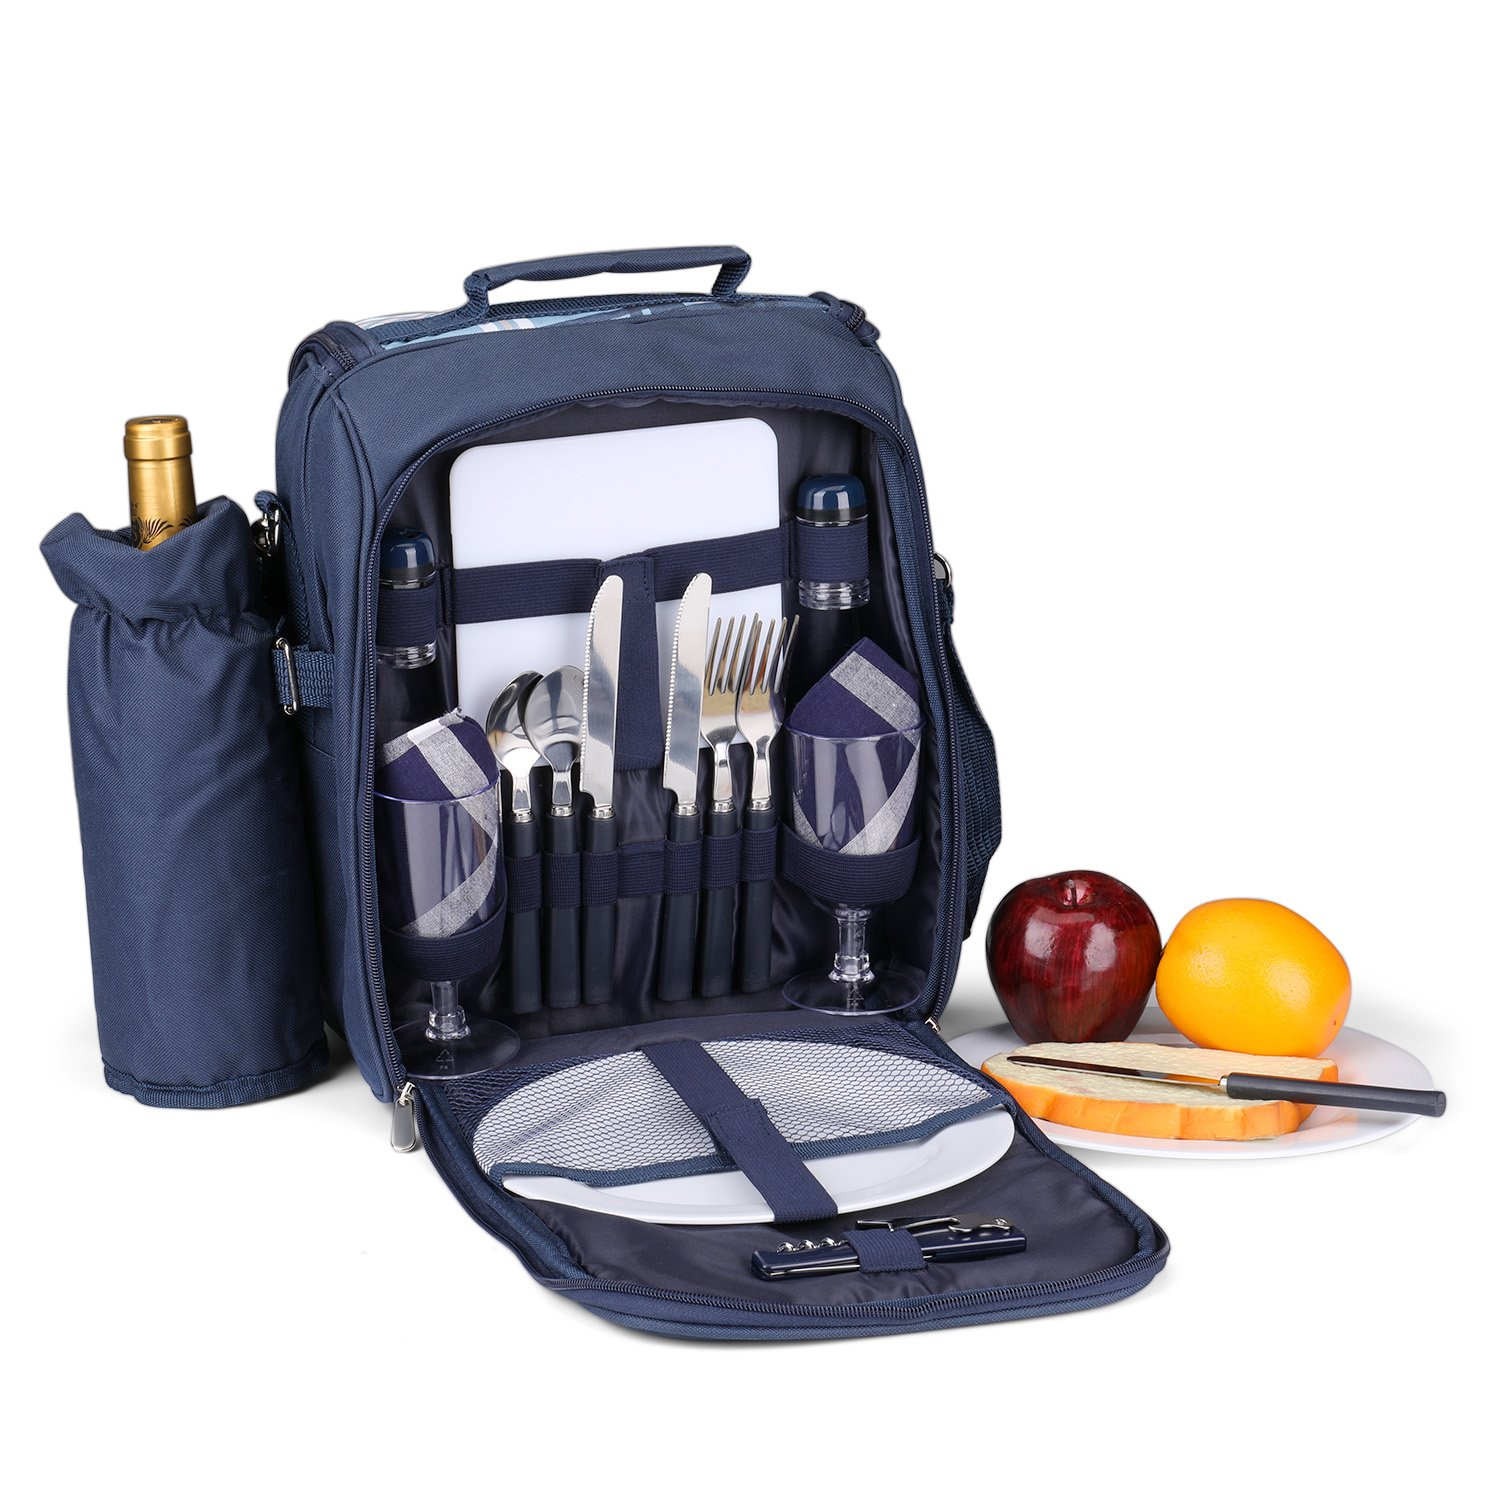 Flexzion Picnic Bag Kit - Set for 2 Person with Cooler Compartment Detachable Bottle/Wine Holder Plates and Flatware Cutlery Set Insulated Lunch Bag (Plaid Tartan - Blue)